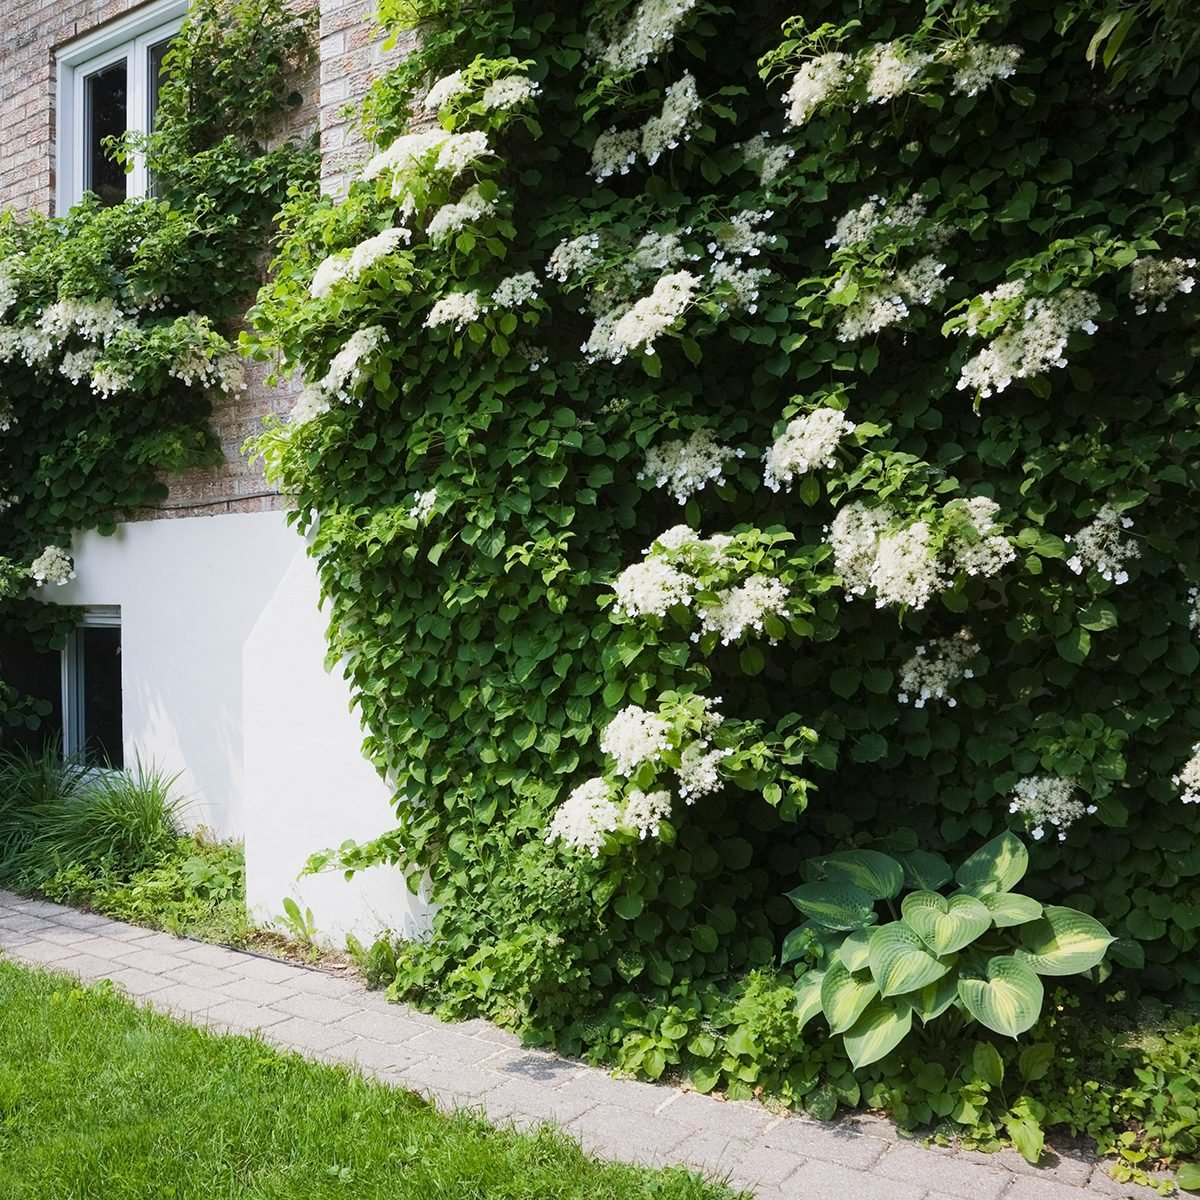 Paving stone path and climbing Hydrangea Petiolaris flowers growing on the side of a residential home at springtime